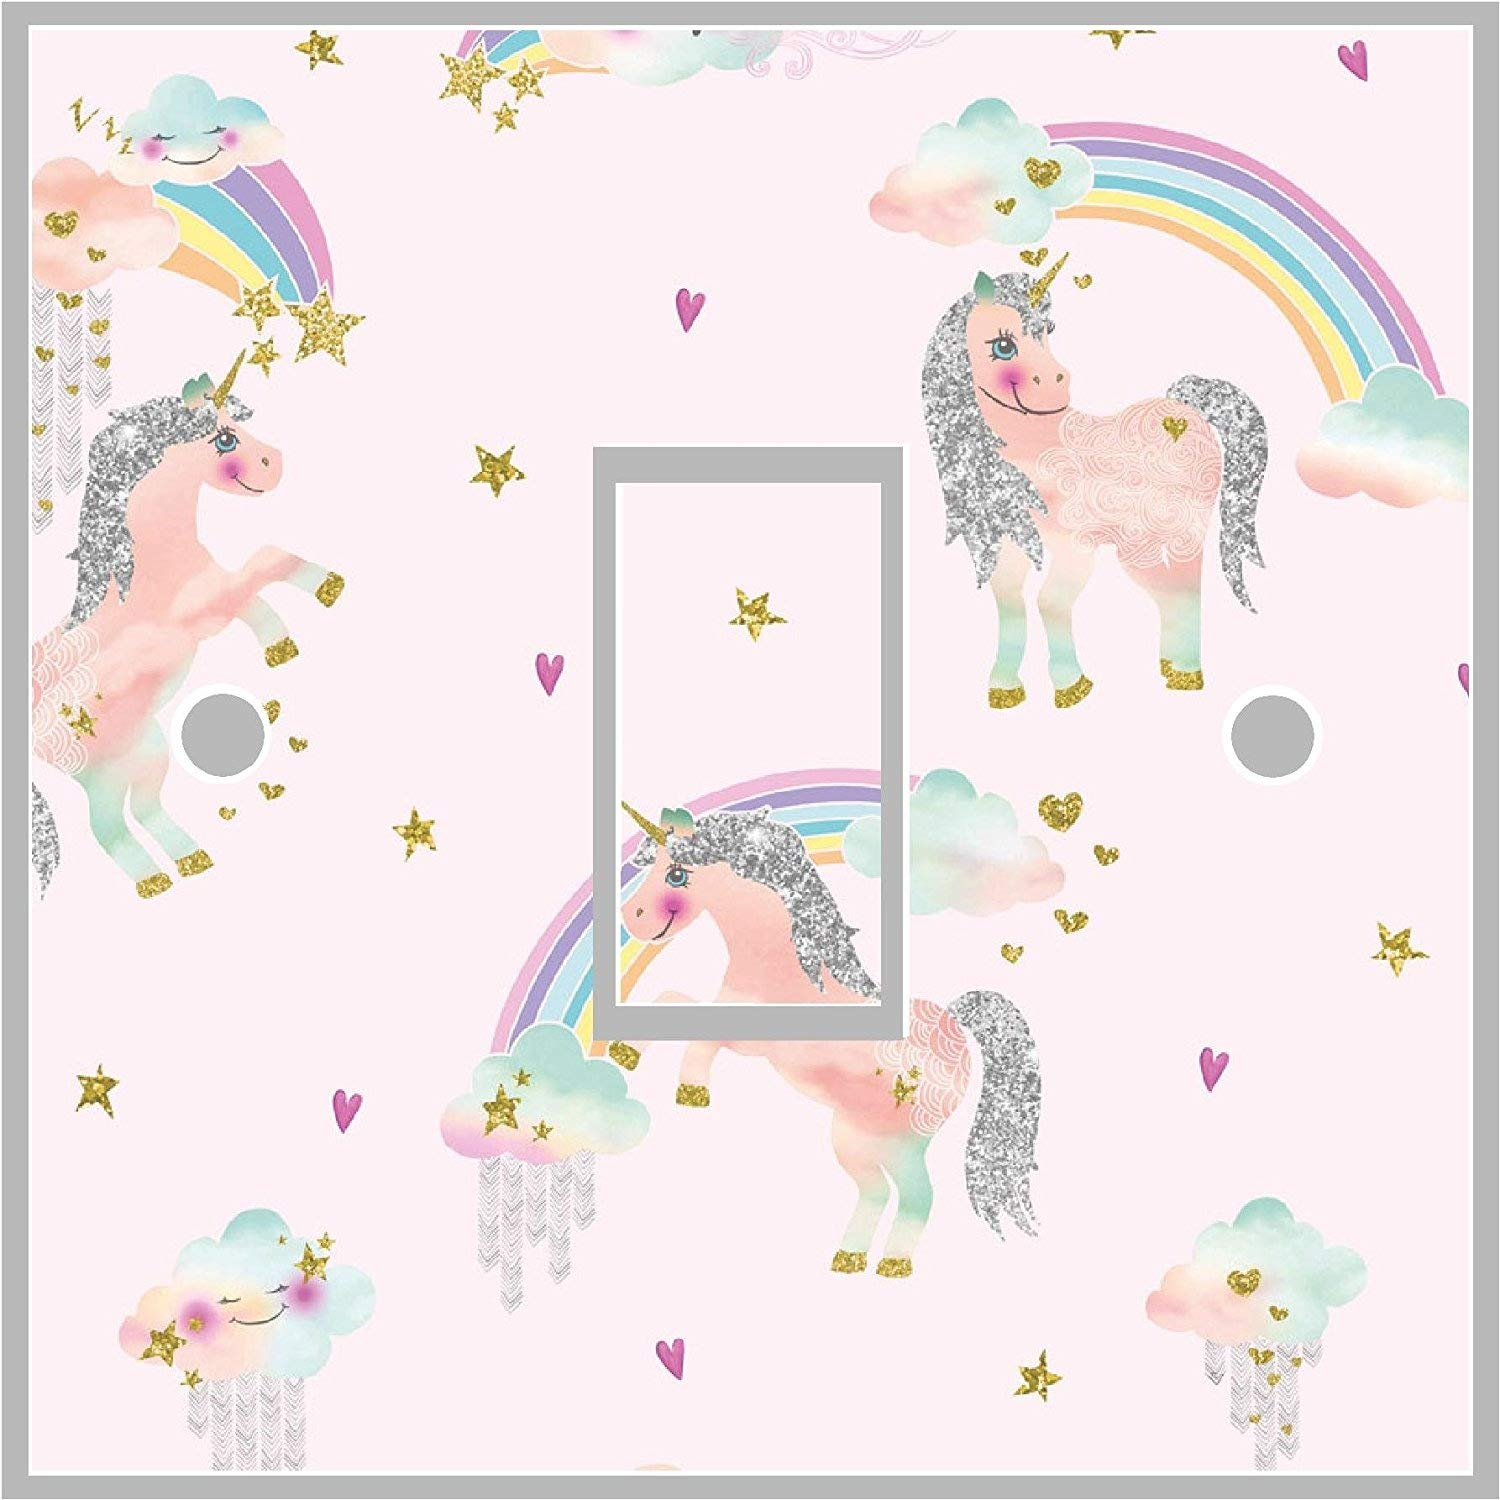 Unicorn Girls Light Switch Cover Wrap Skin UK DOUBLE or SINGLE Switch Sticker Vinyl Decal (Double Switch) Red Parrot Graphics